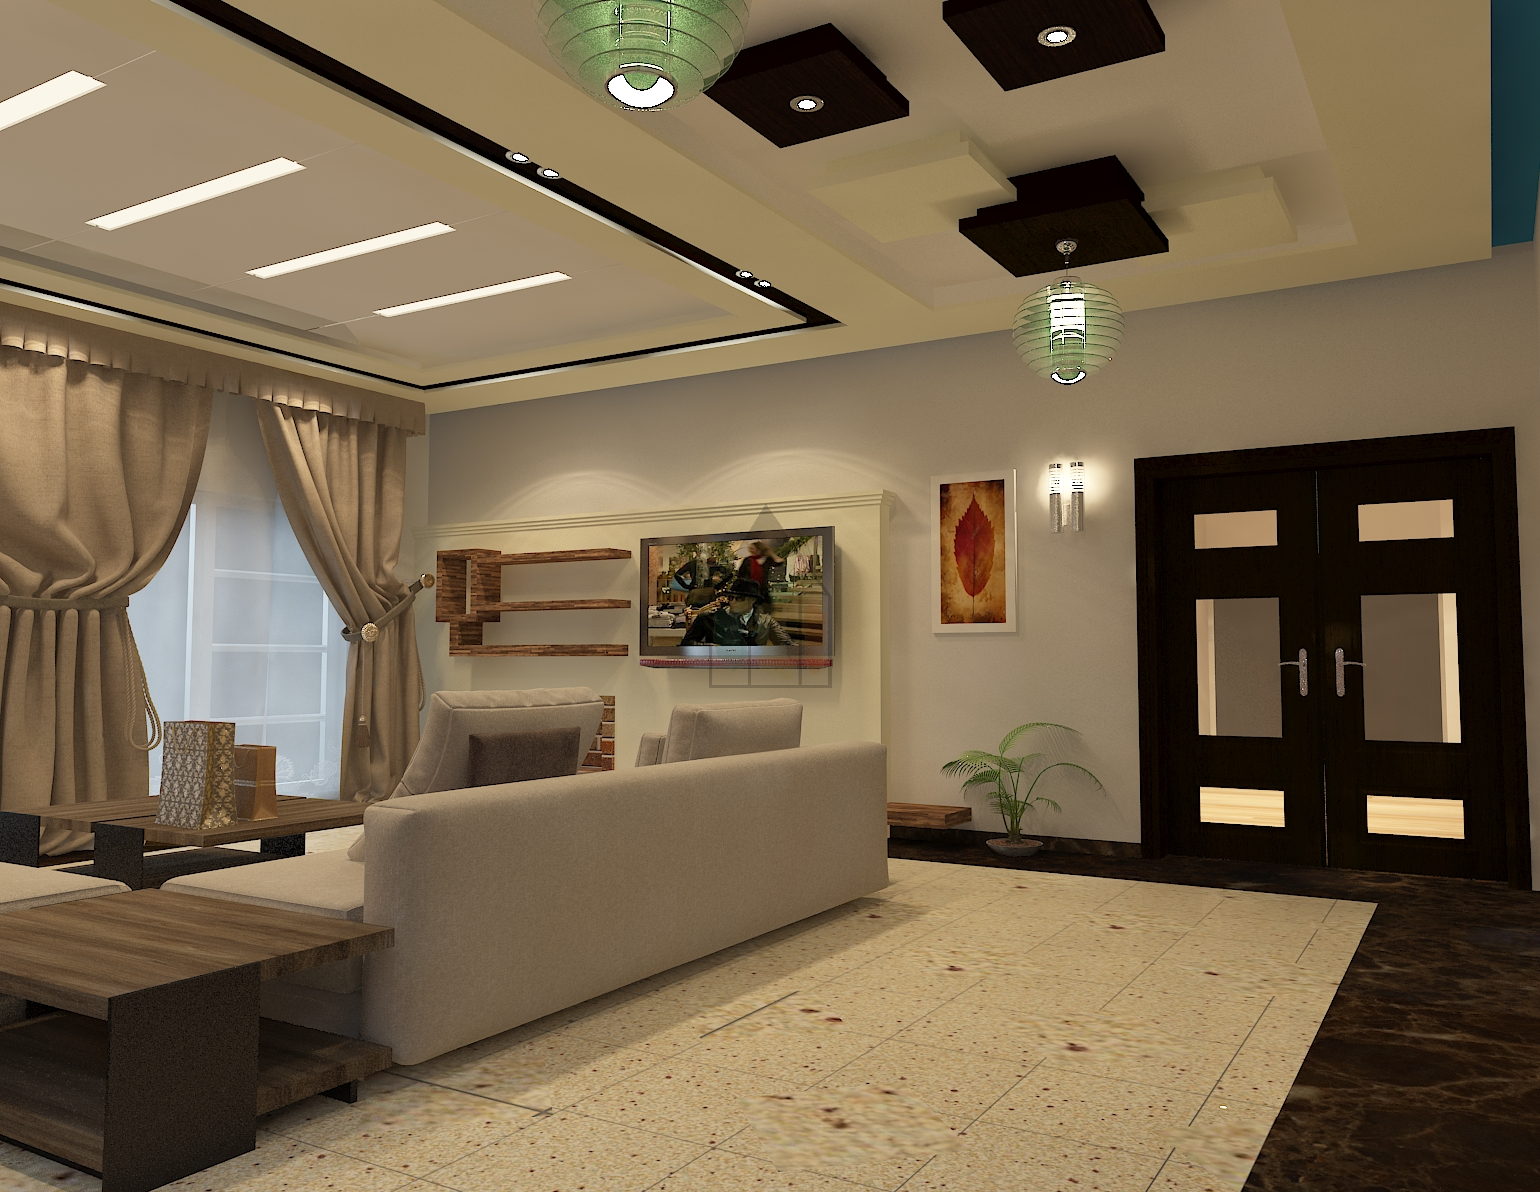 Tv lounge designs in pakistan from many other tv lounge for Room design ideas in pakistan